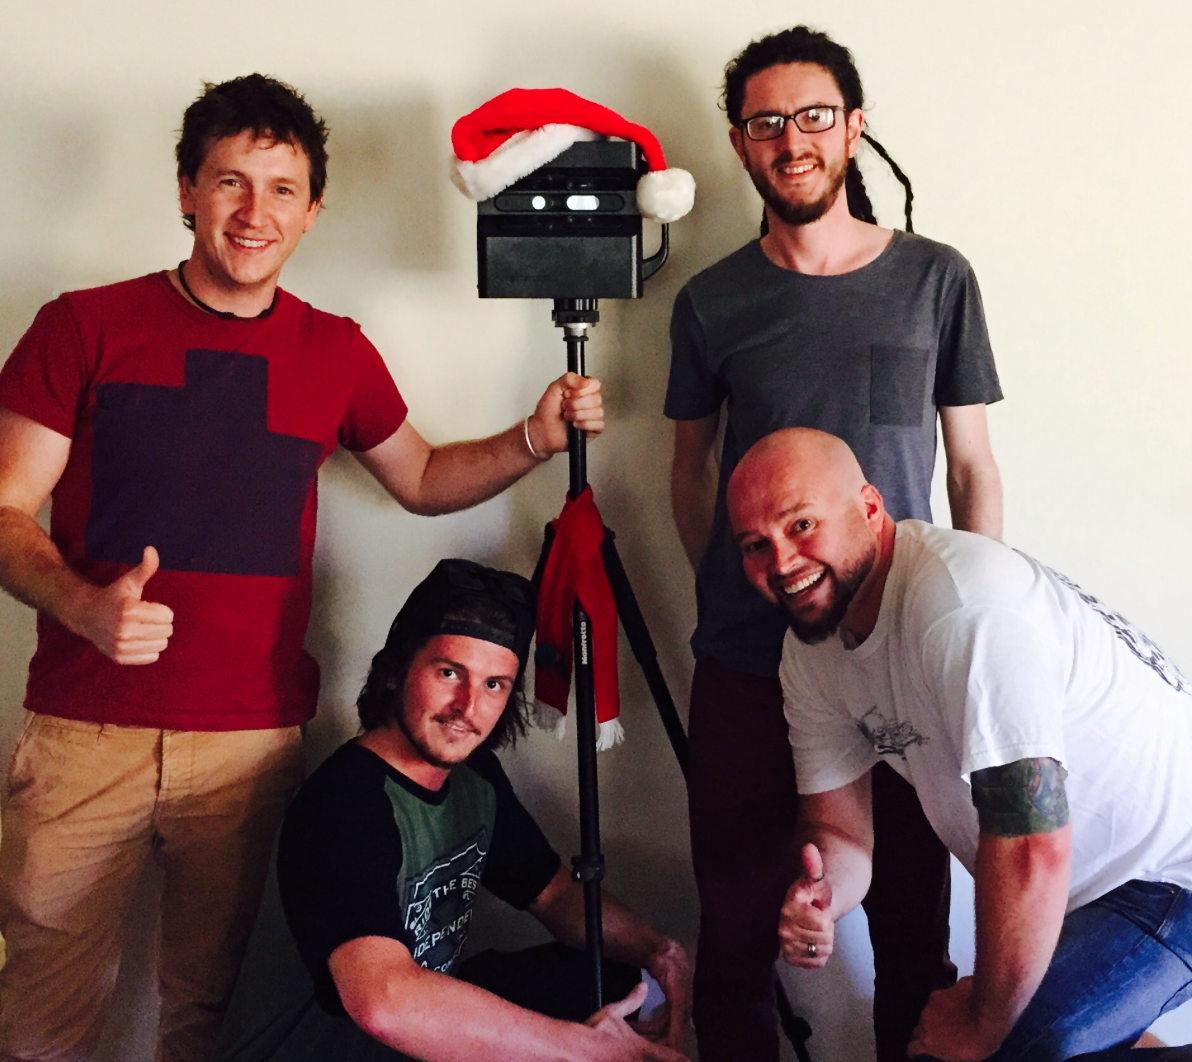 Tickeyview Team | Pictured clockwise from top left are Ben, Lachy, Tim and Mick. Image courtesy of Ticketyview